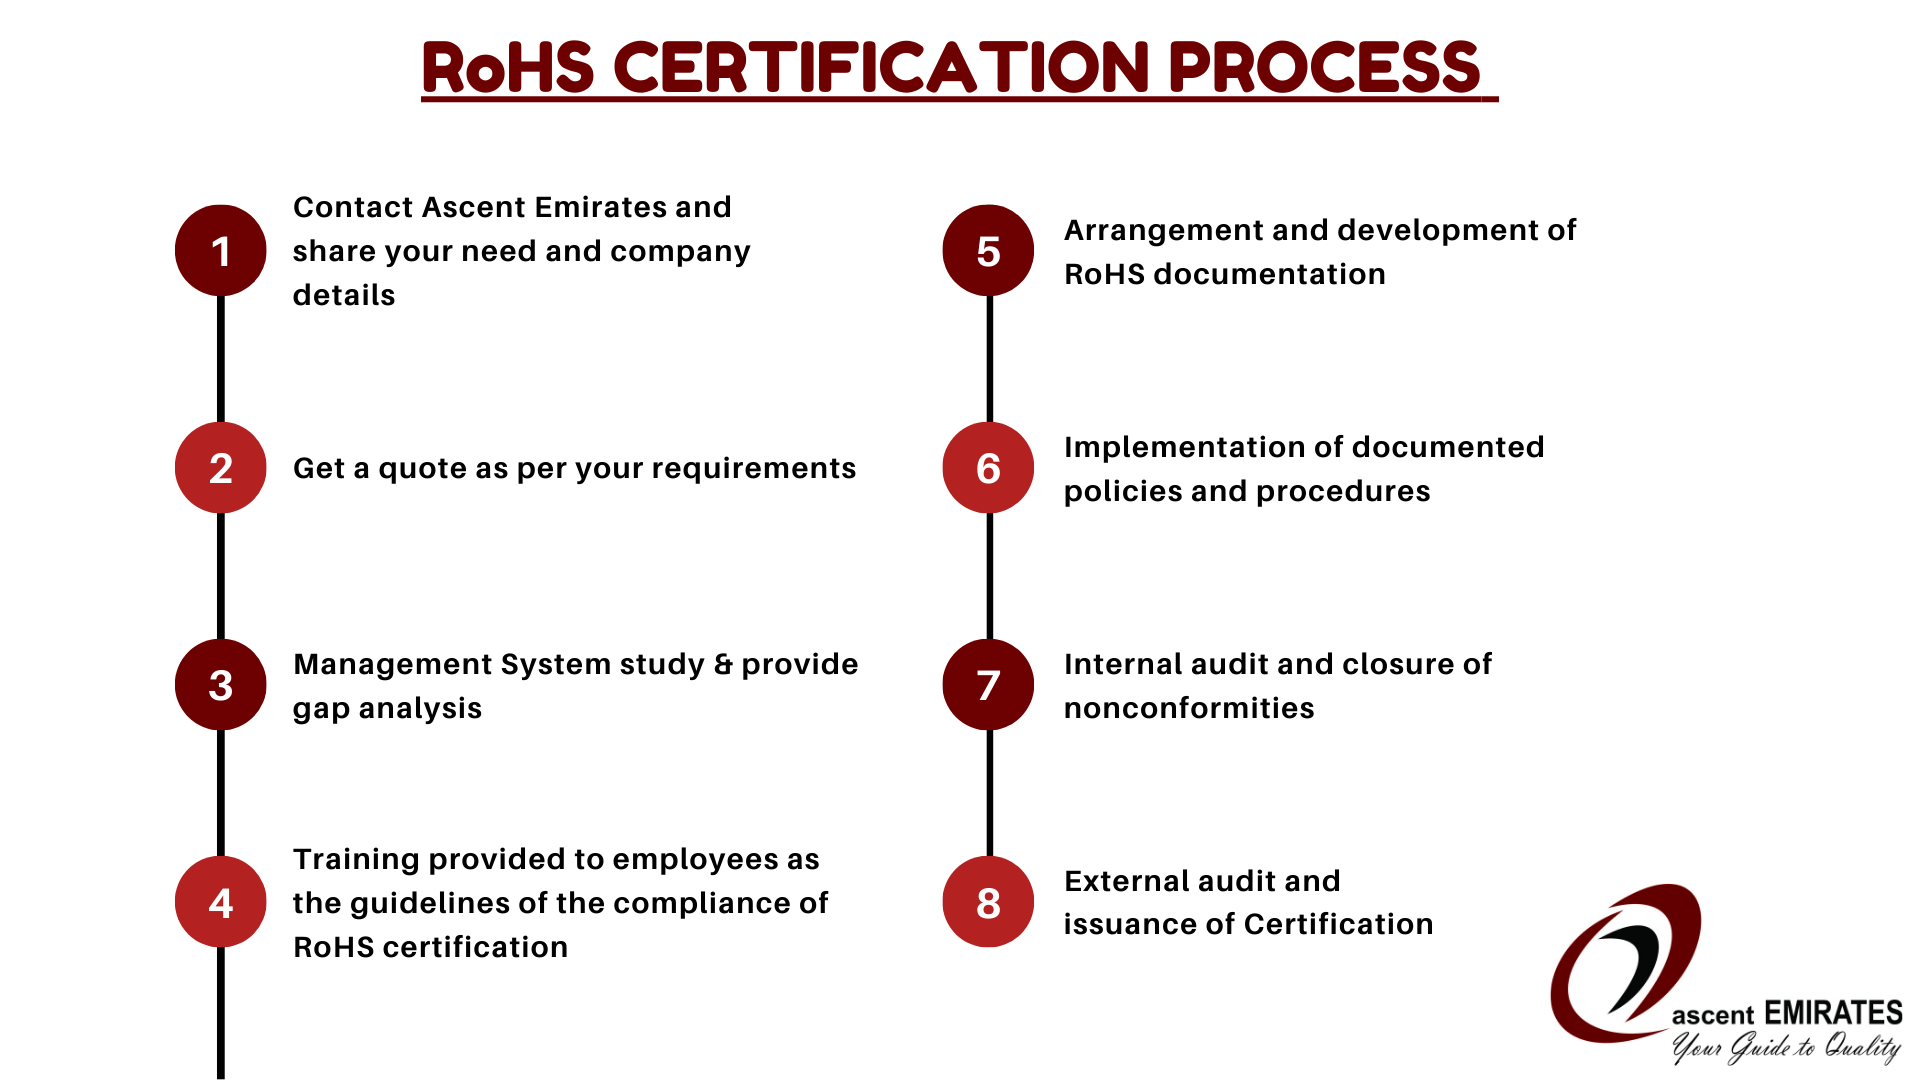 RoHS CERTIFICATION PROCESS IN DUBAI AND UAE